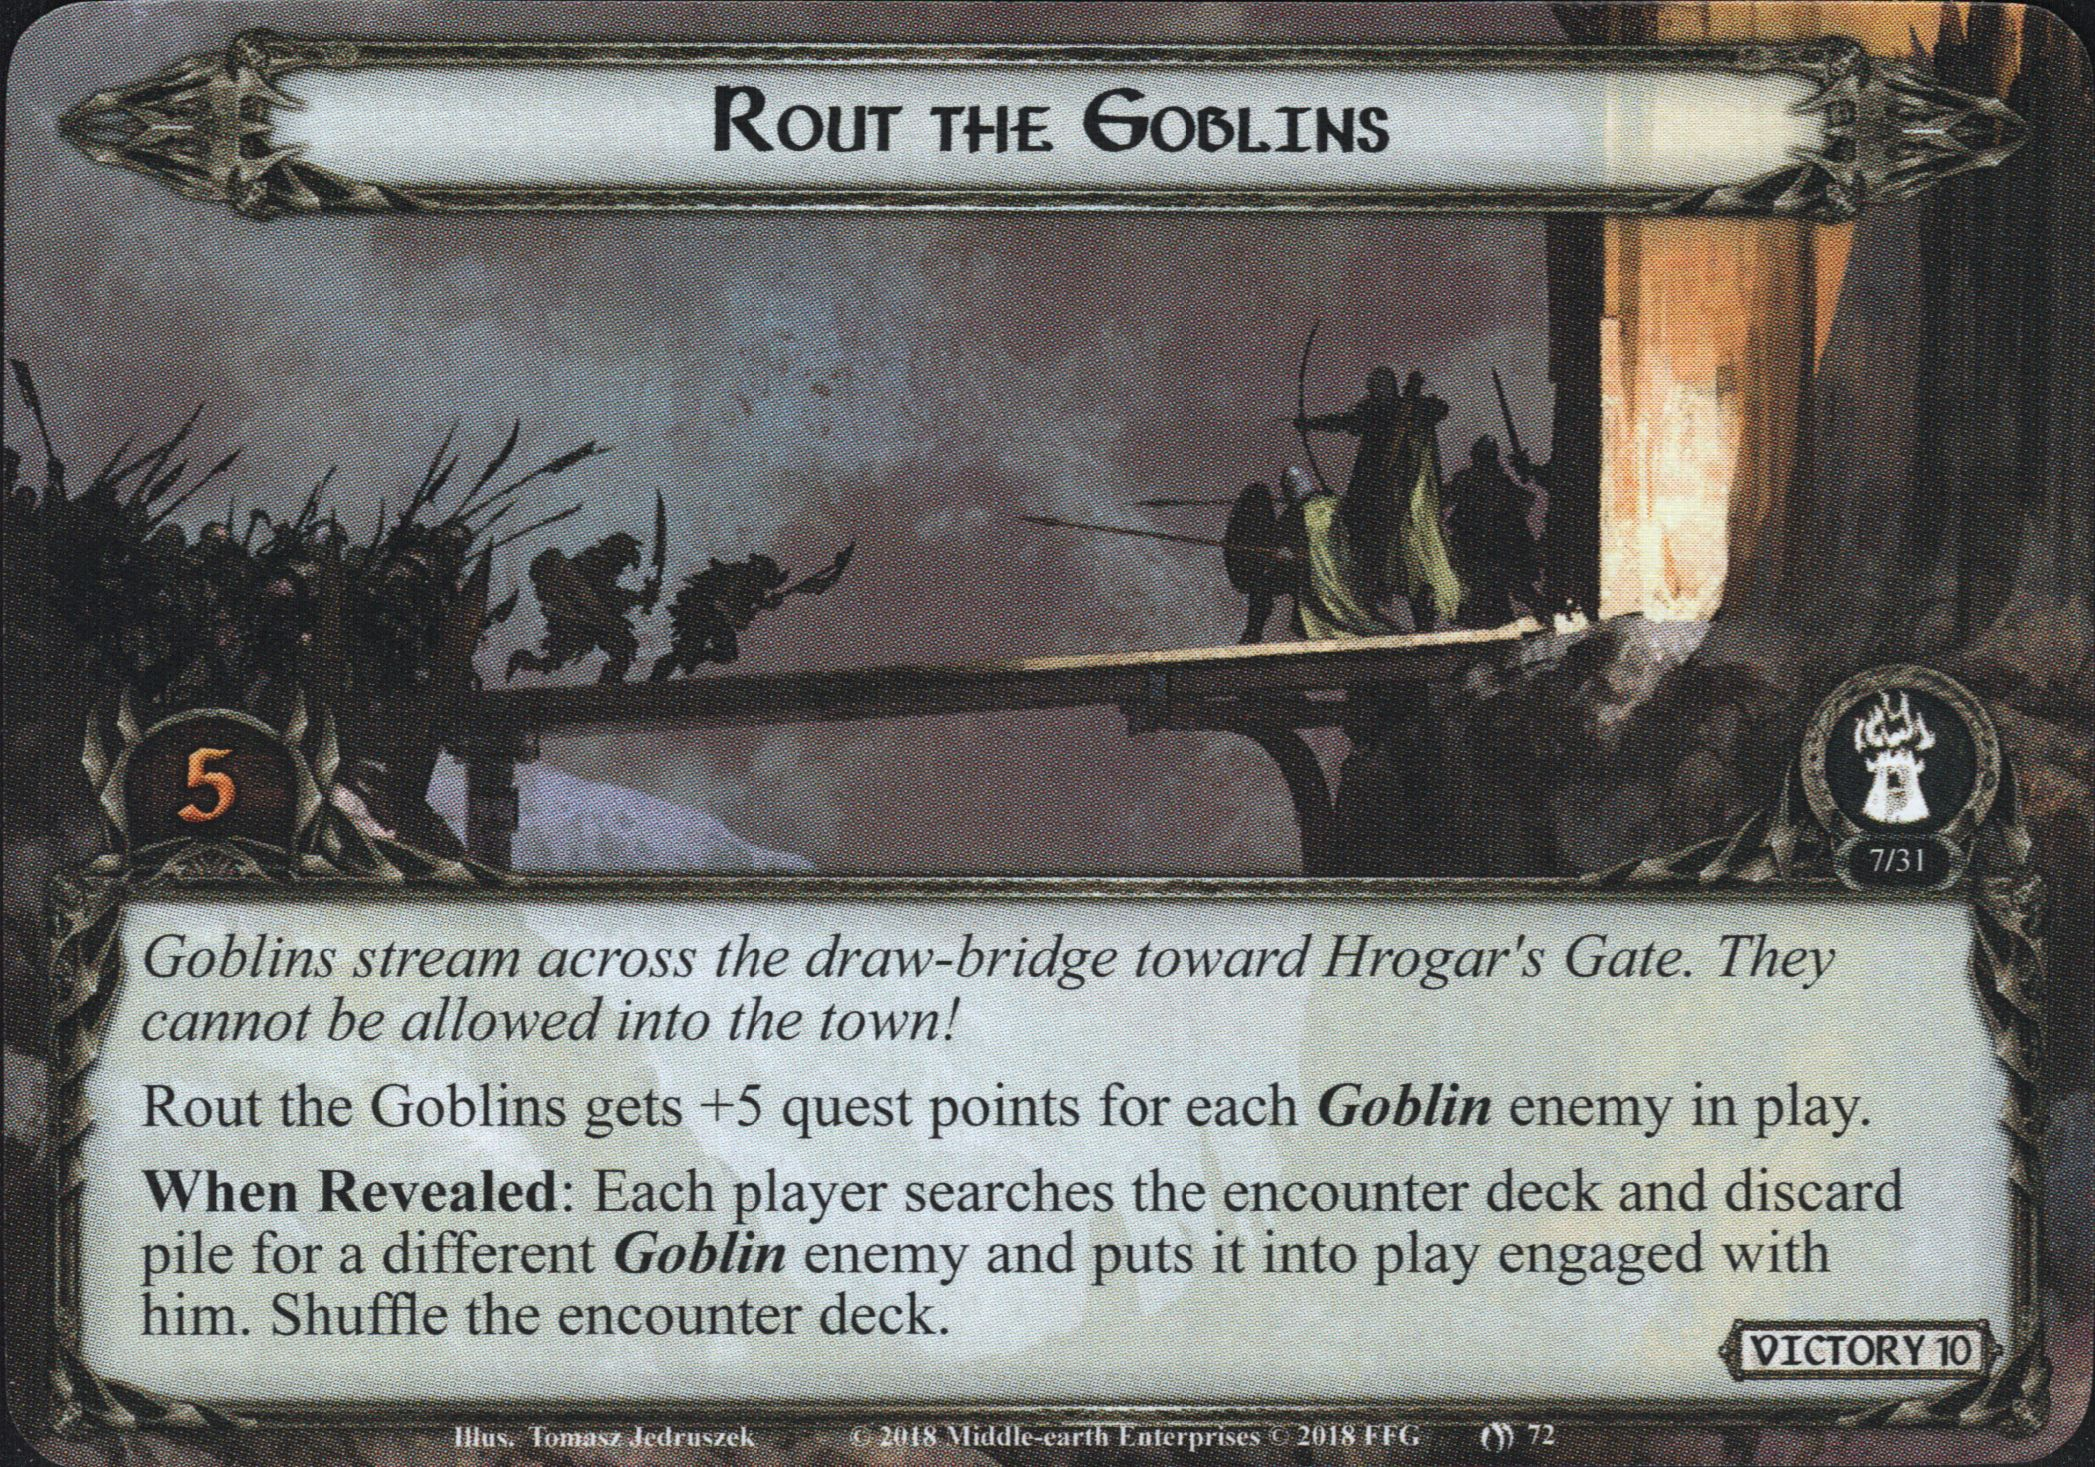 Rout-the-Goblins.jpg